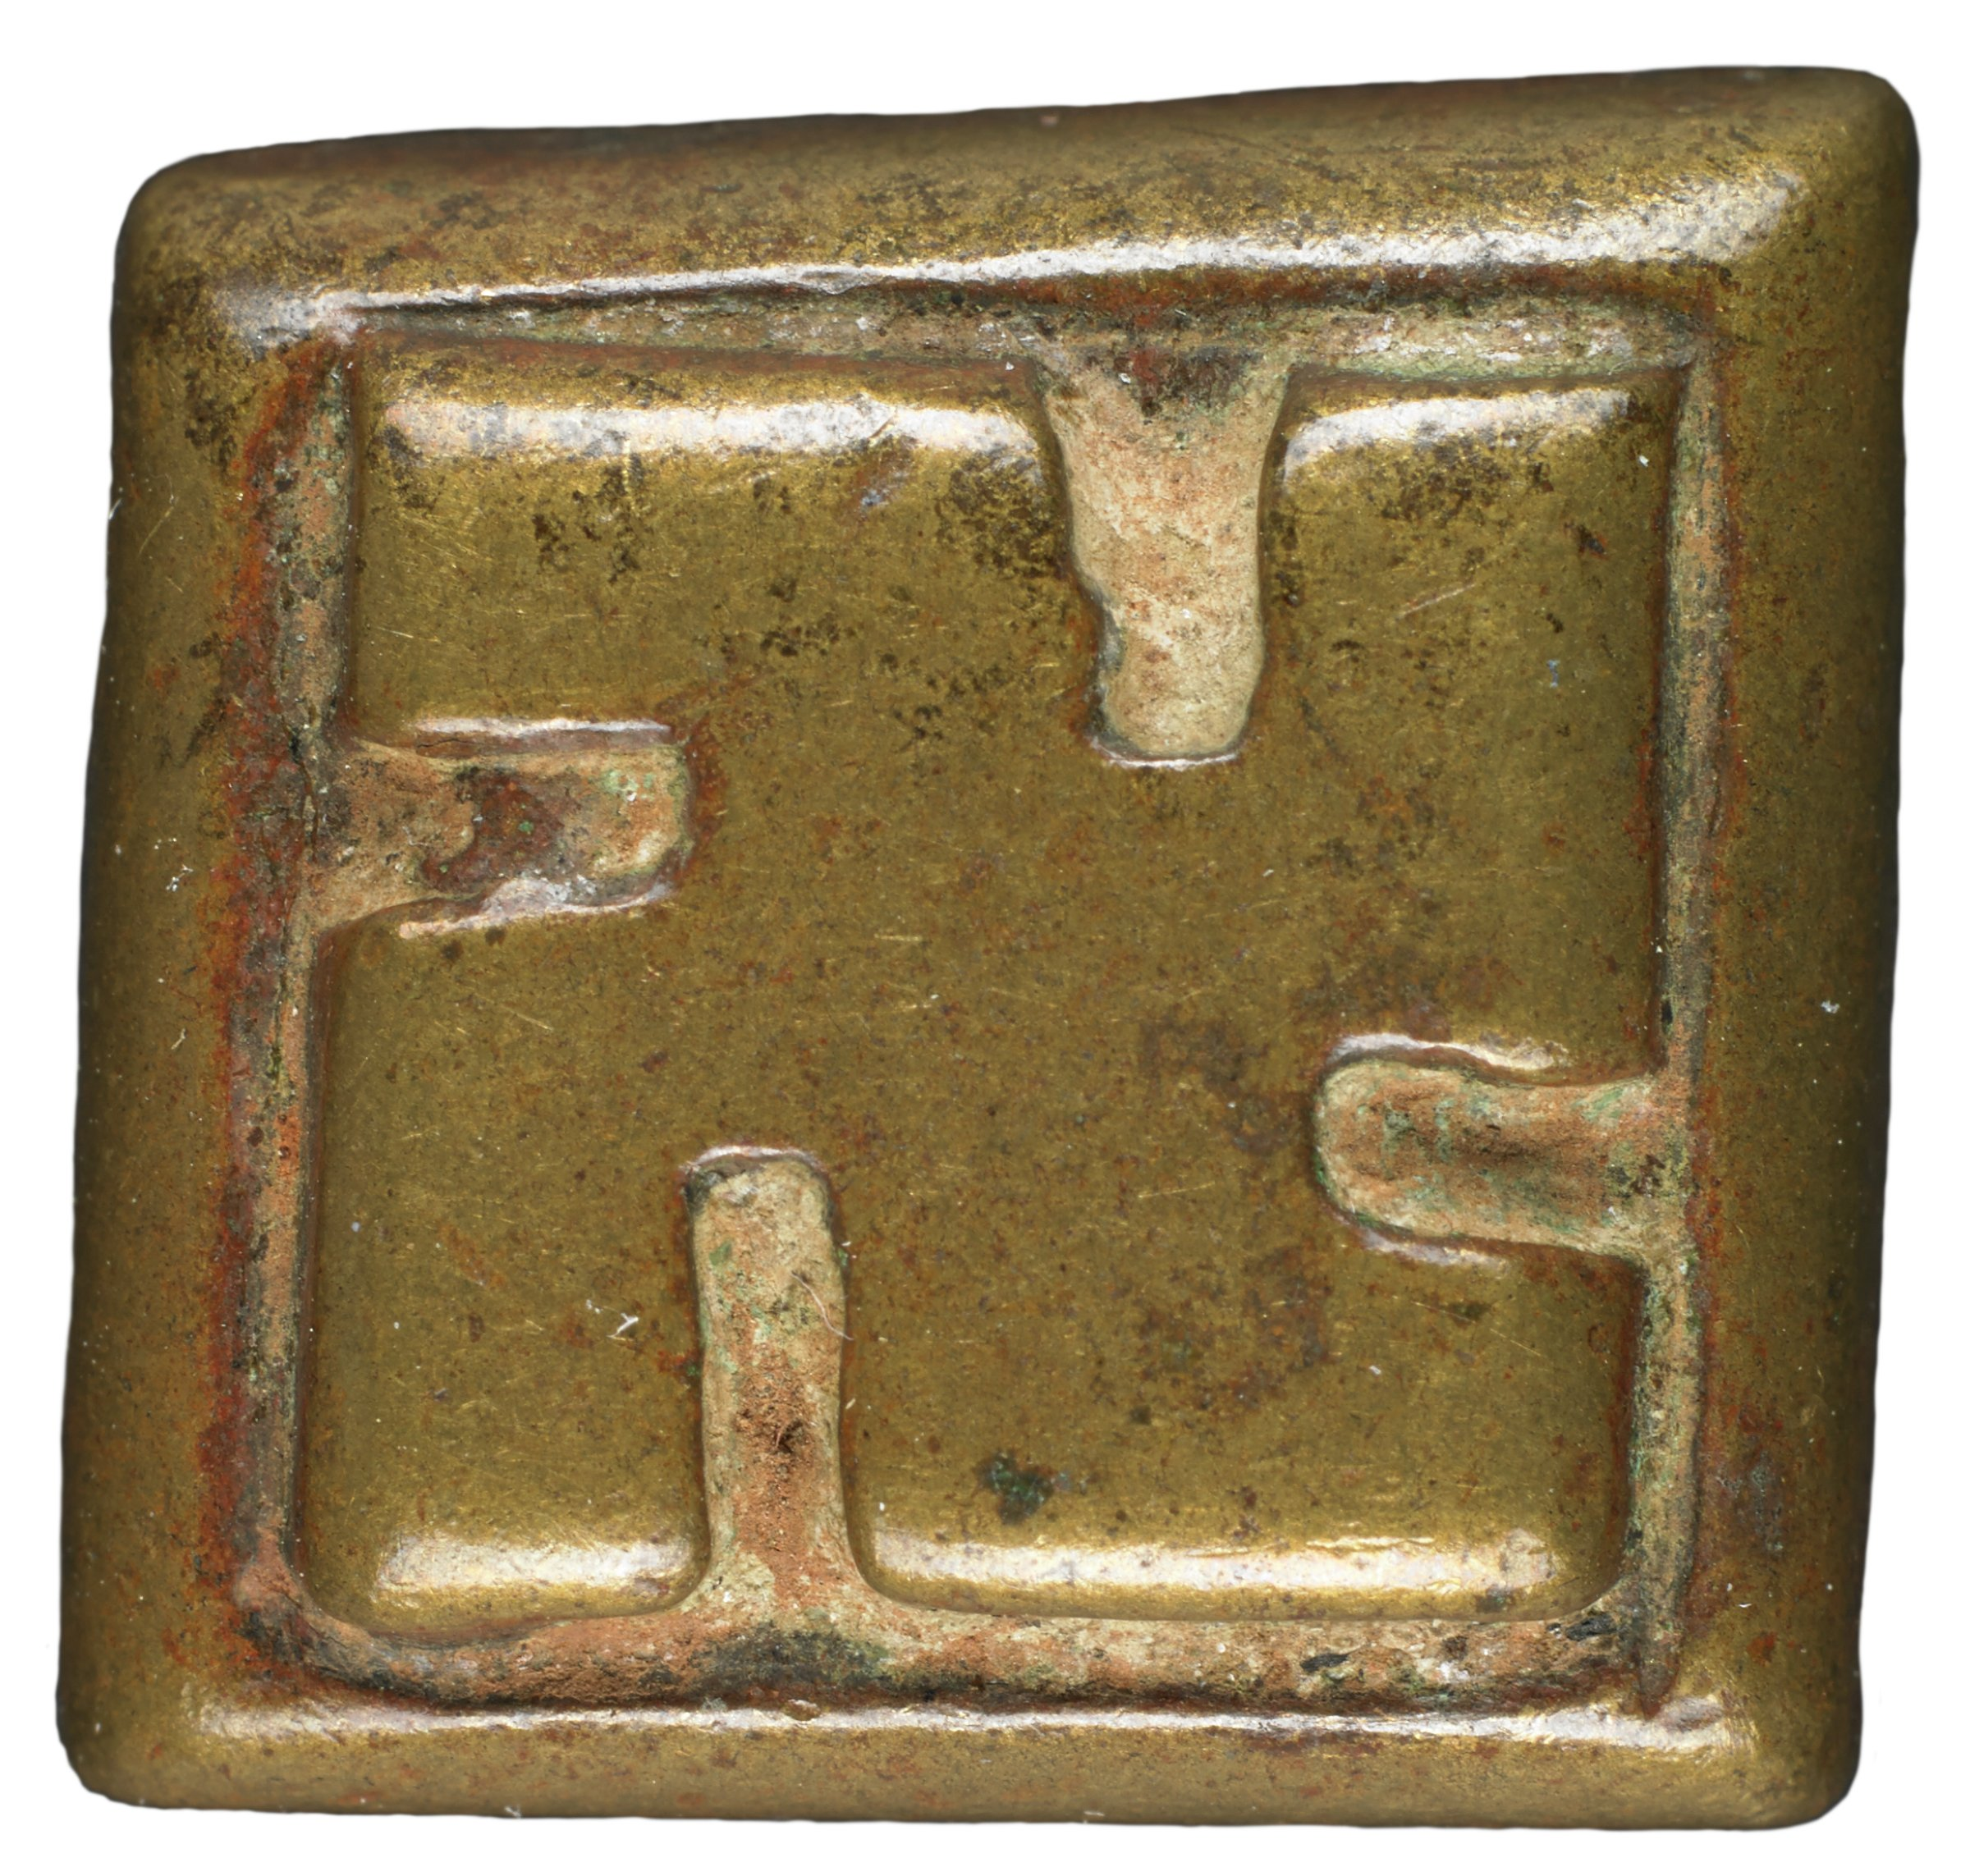 Gold Weight with Geometric Design, Asante people or, Baule people, Akan group, Ghana or, Côte d'Ivoire, African, brass